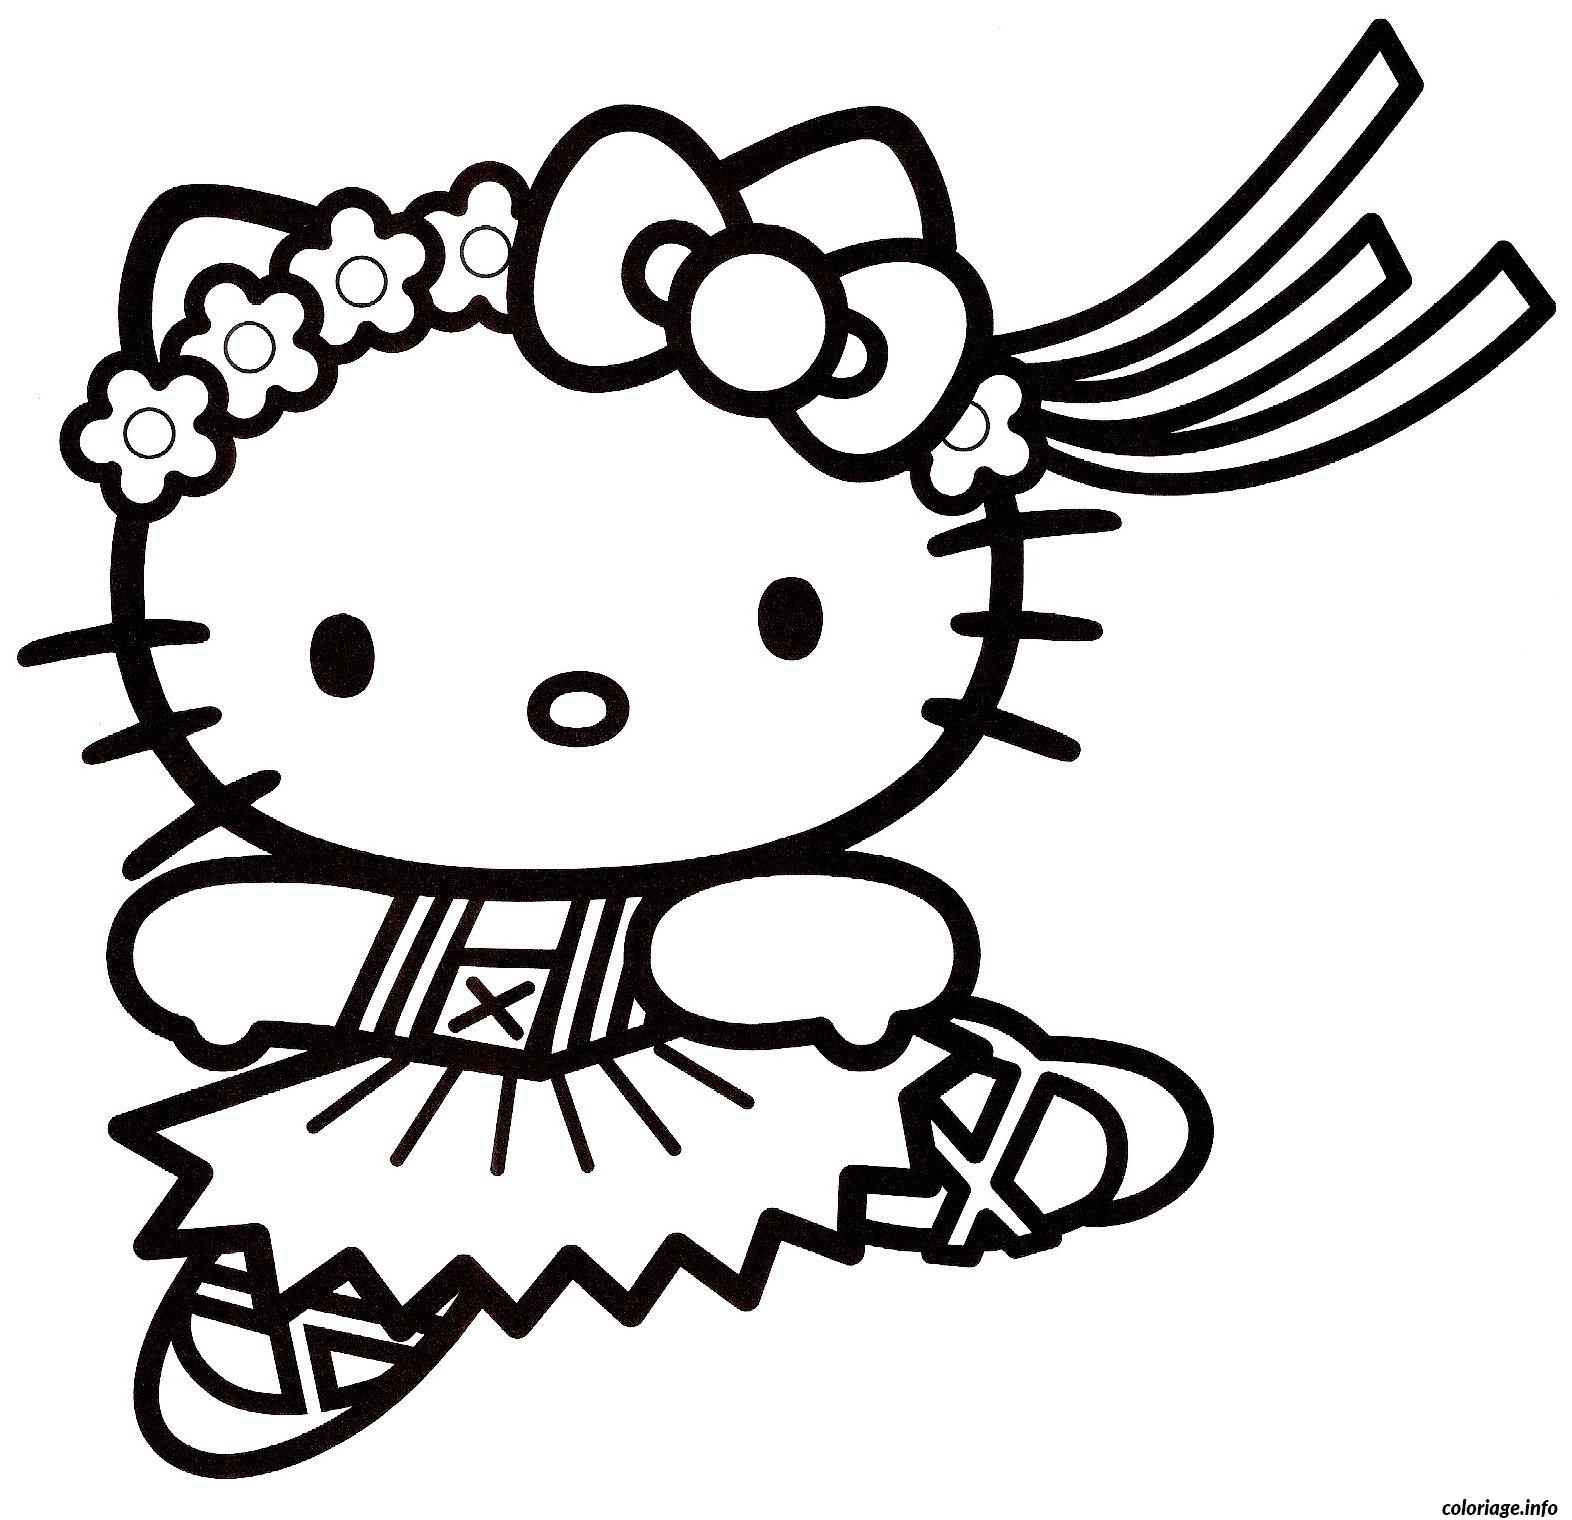 Coloriage dessin hello kitty 3 - Hello kitty jeux coloriage ...